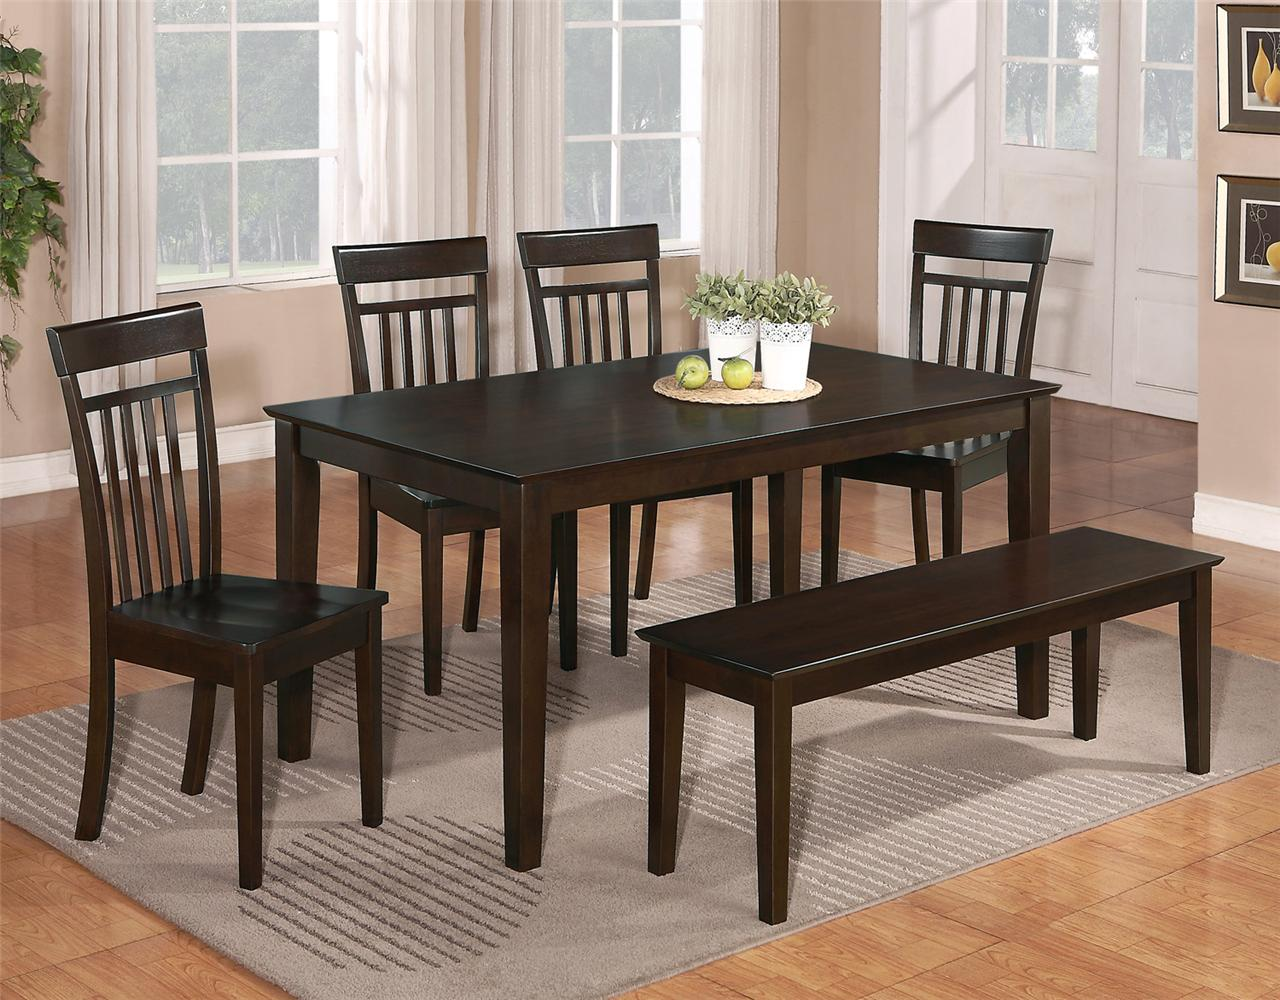 6 pc dinette kitchen dining room set table w 4 wood chair ForDinette Set With Bench